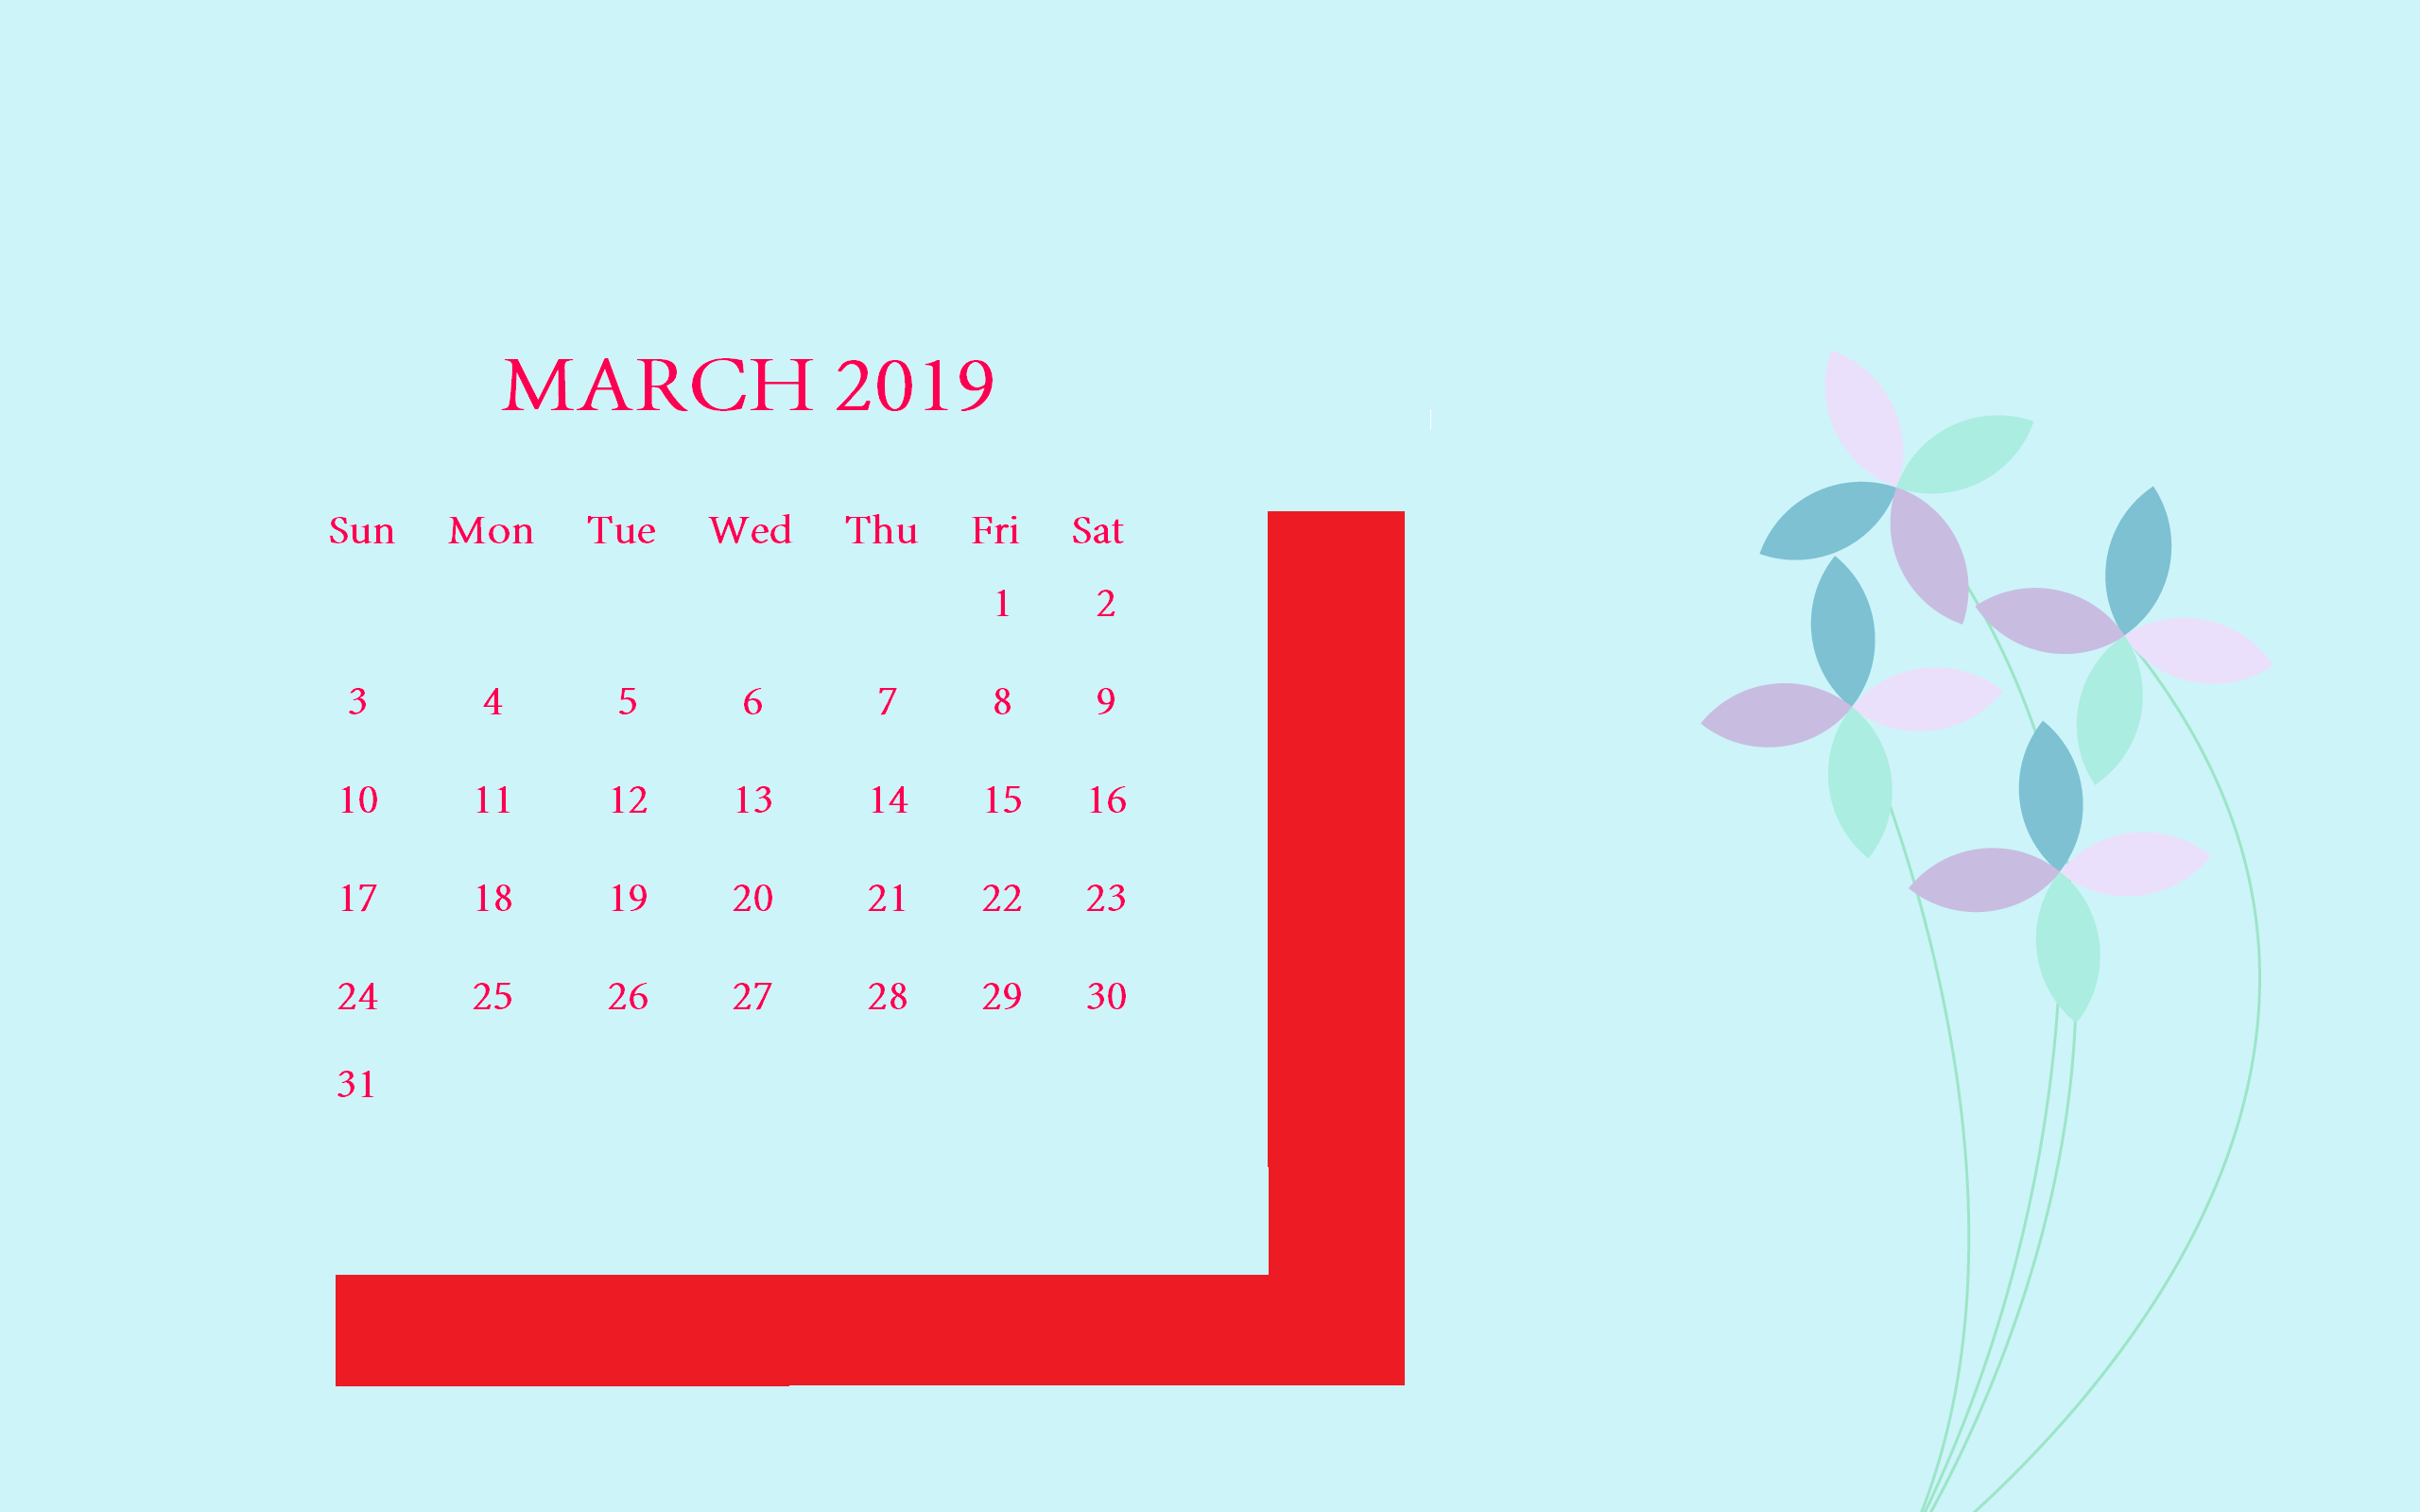 March 2019 Desktop Calendar Wallpaper Calendar Wallpaper Free Printable Calendar Templates Desktop Calendar